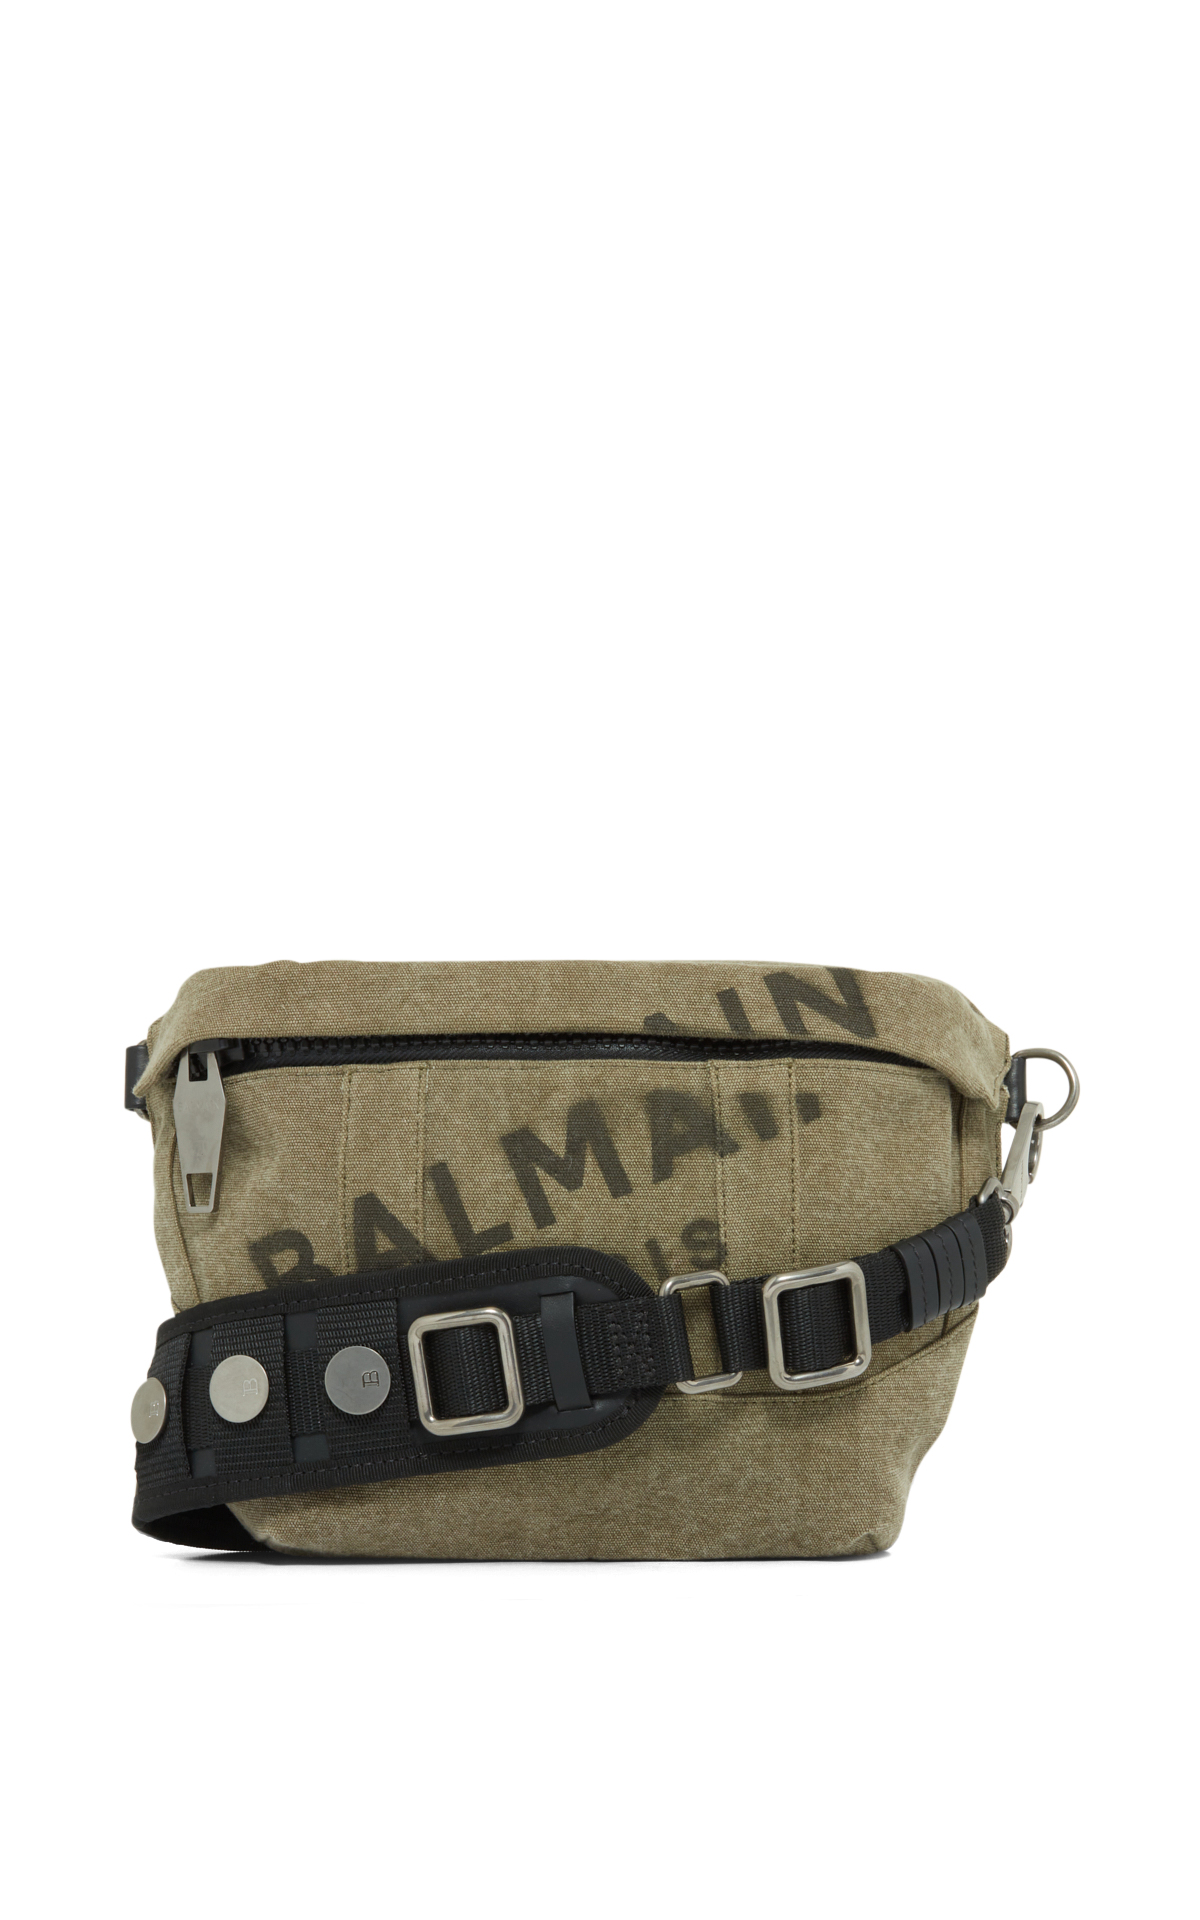 Balmain Paris bumbag la vallée village